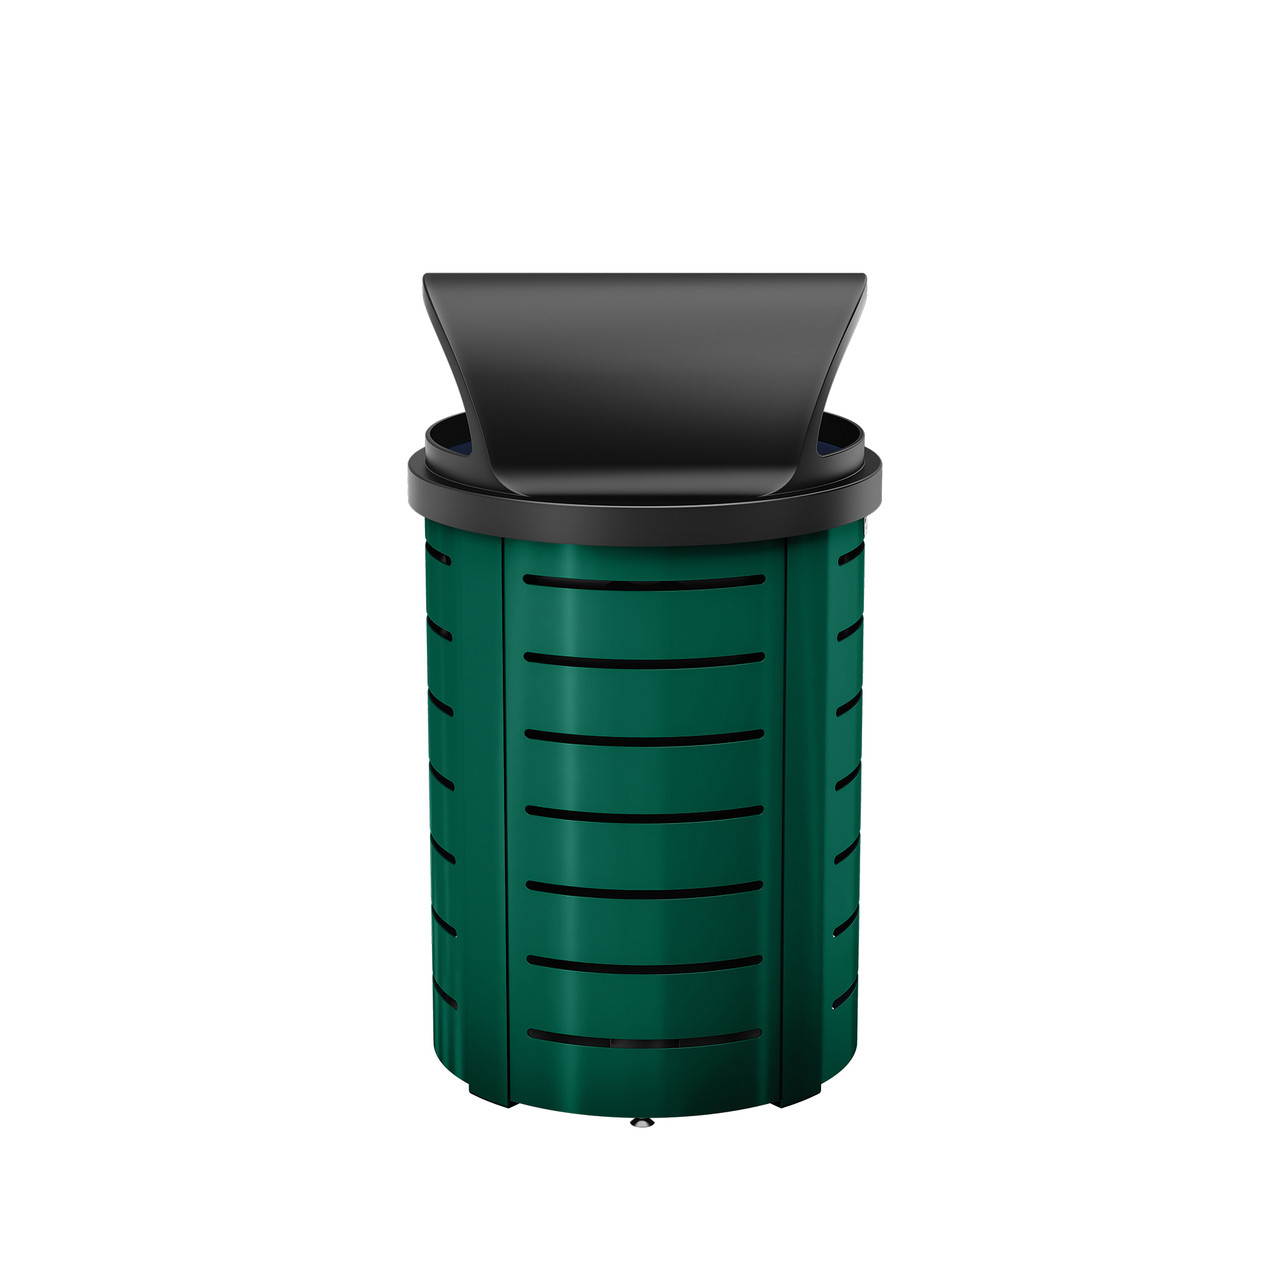 Suncast Metal Trash Can - Roto Molded Lid - Dark Green